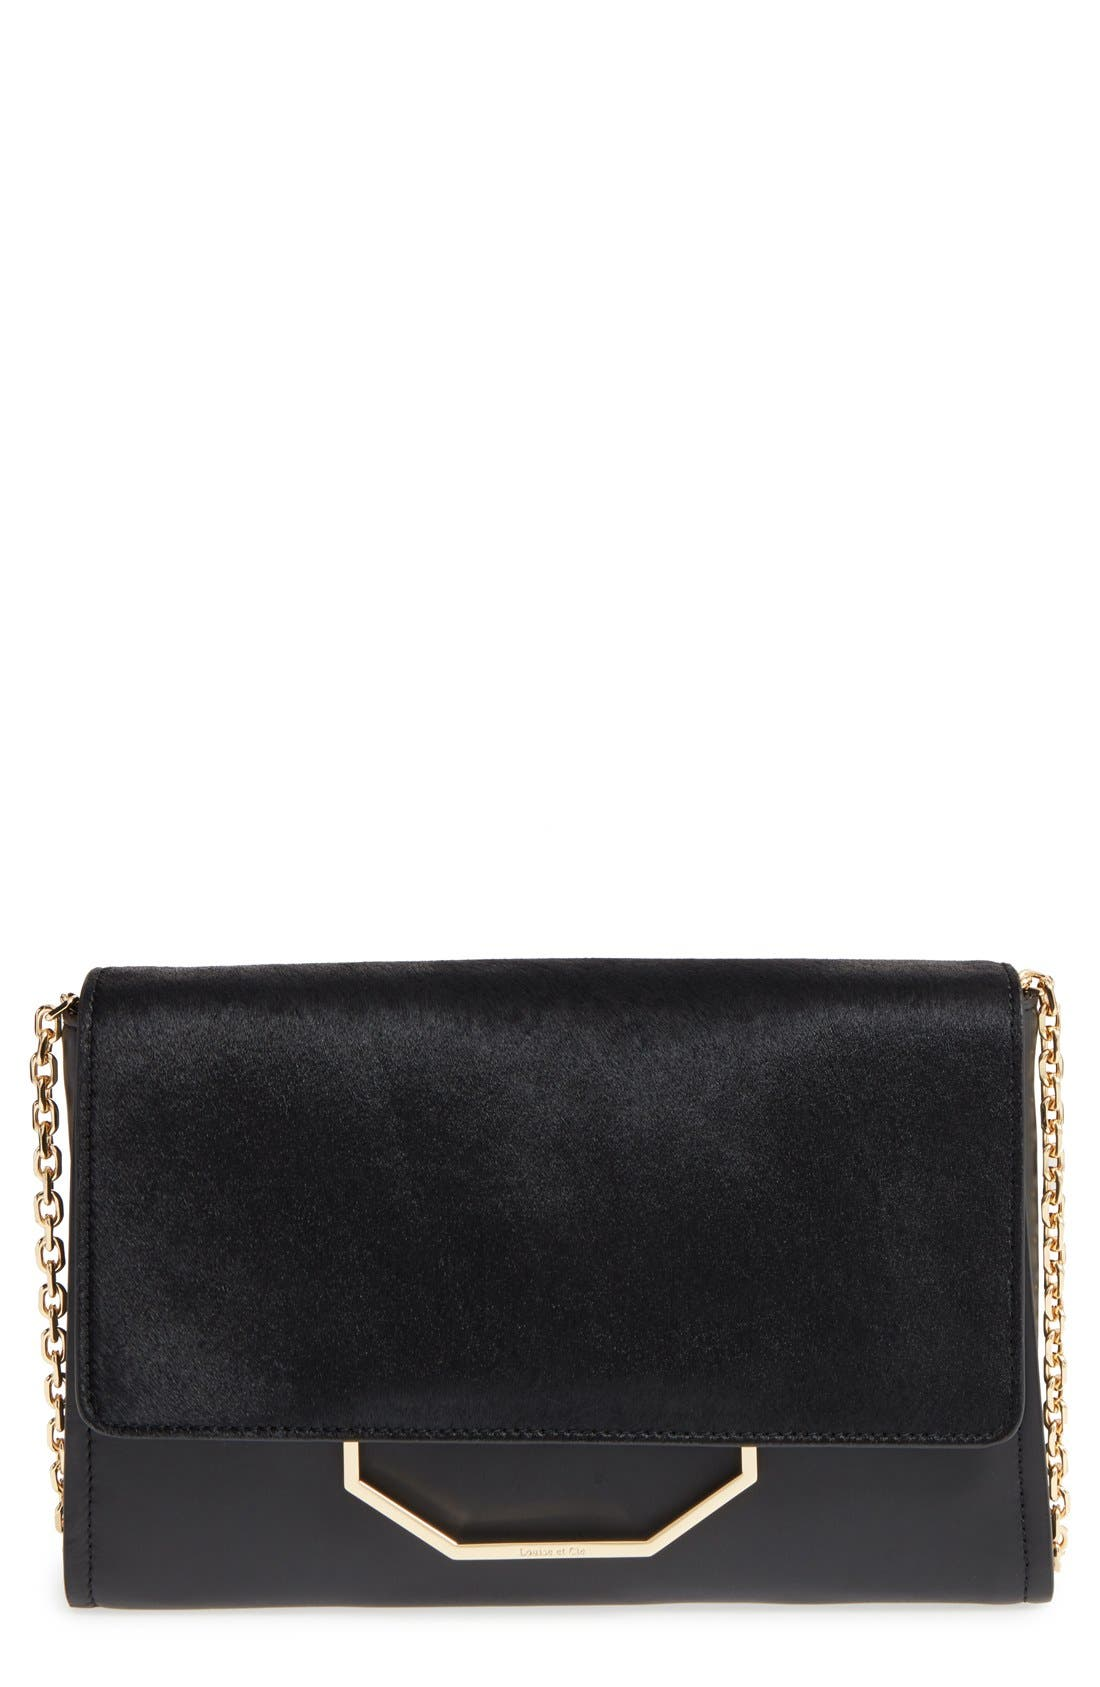 'Towa' Leather Clutch,                             Main thumbnail 1, color,                             001